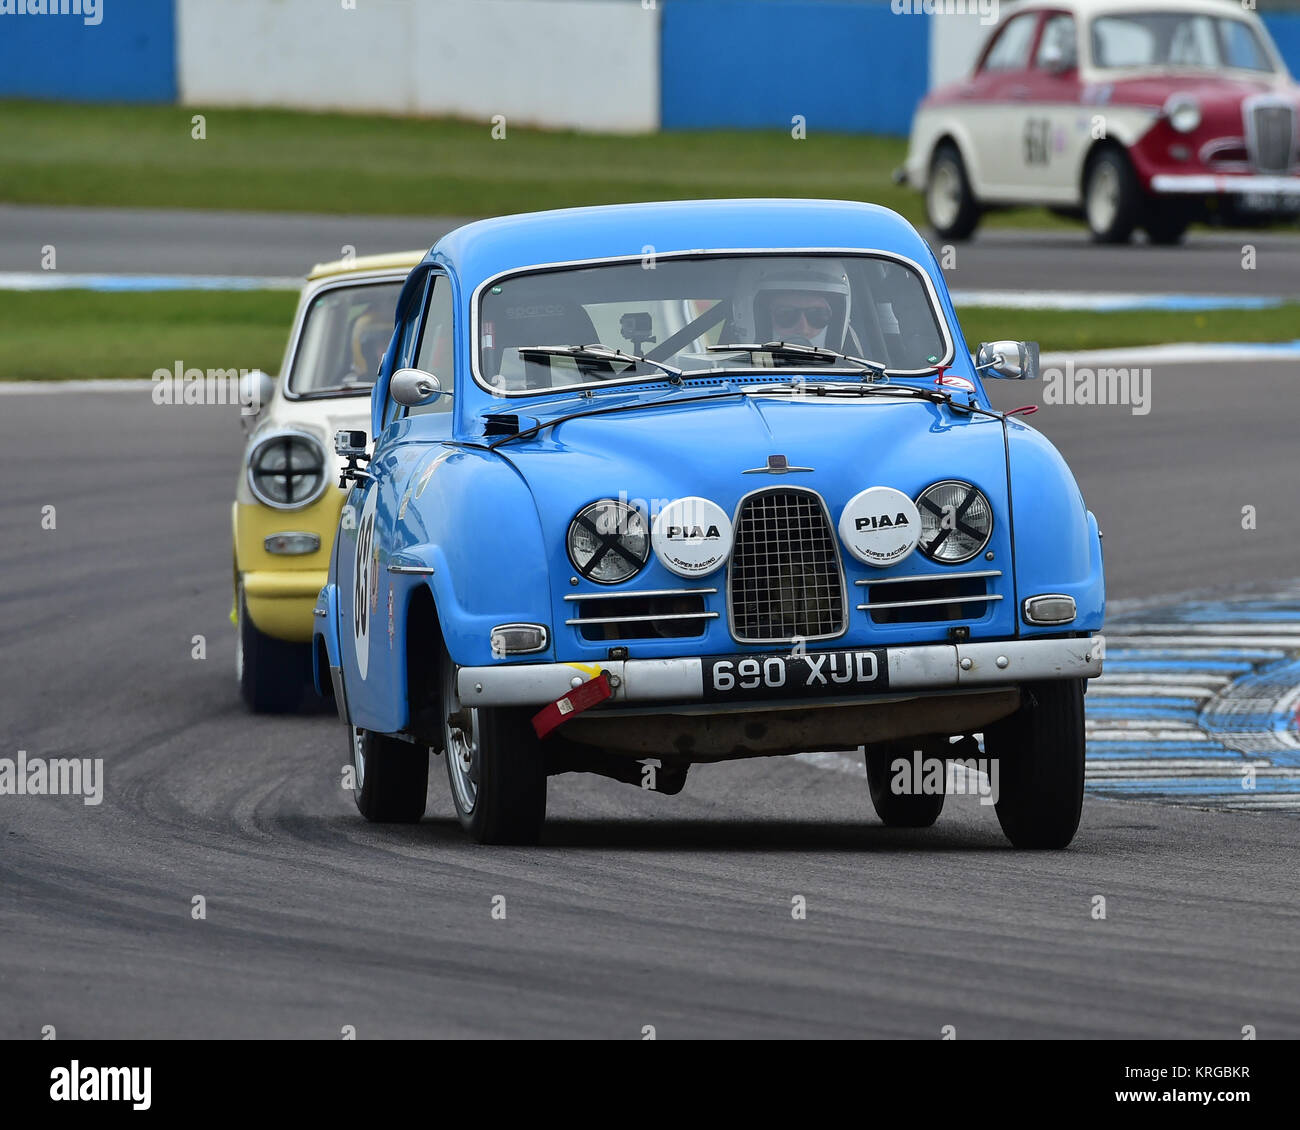 Saab cars stock photos saab cars stock images alamy for National motor club compensation plan